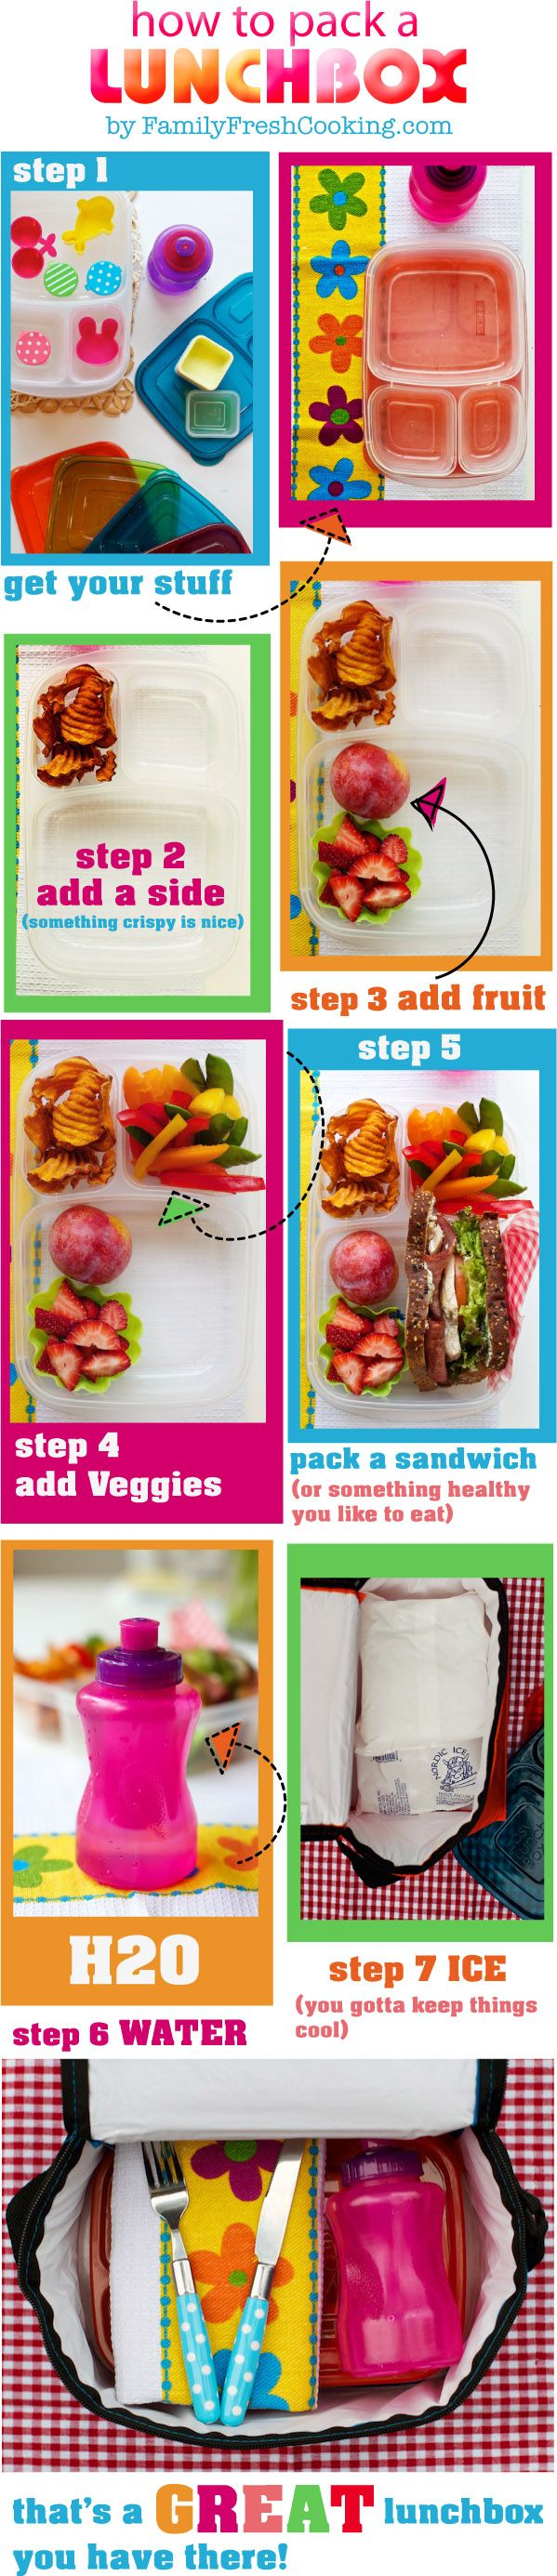 Nice visual on How to pack a lunchbox: for the kids and for me!